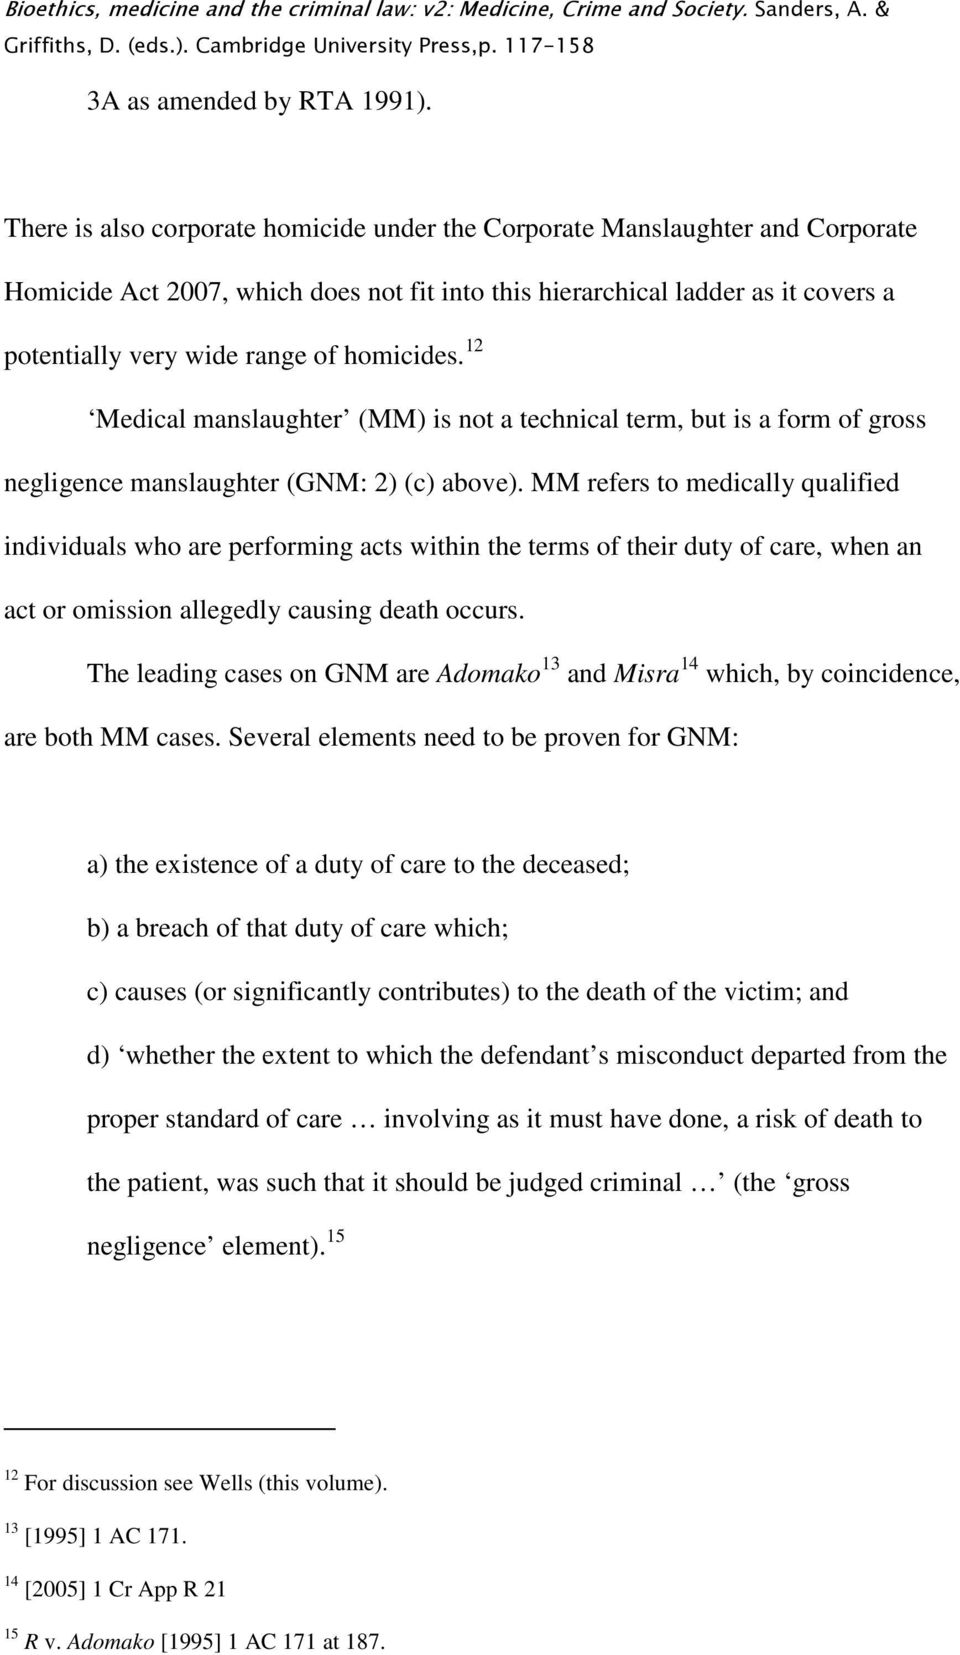 homicides. 12 Medical manslaughter (MM) is not a technical term, but is a form of gross negligence manslaughter (GNM: 2) (c) above).